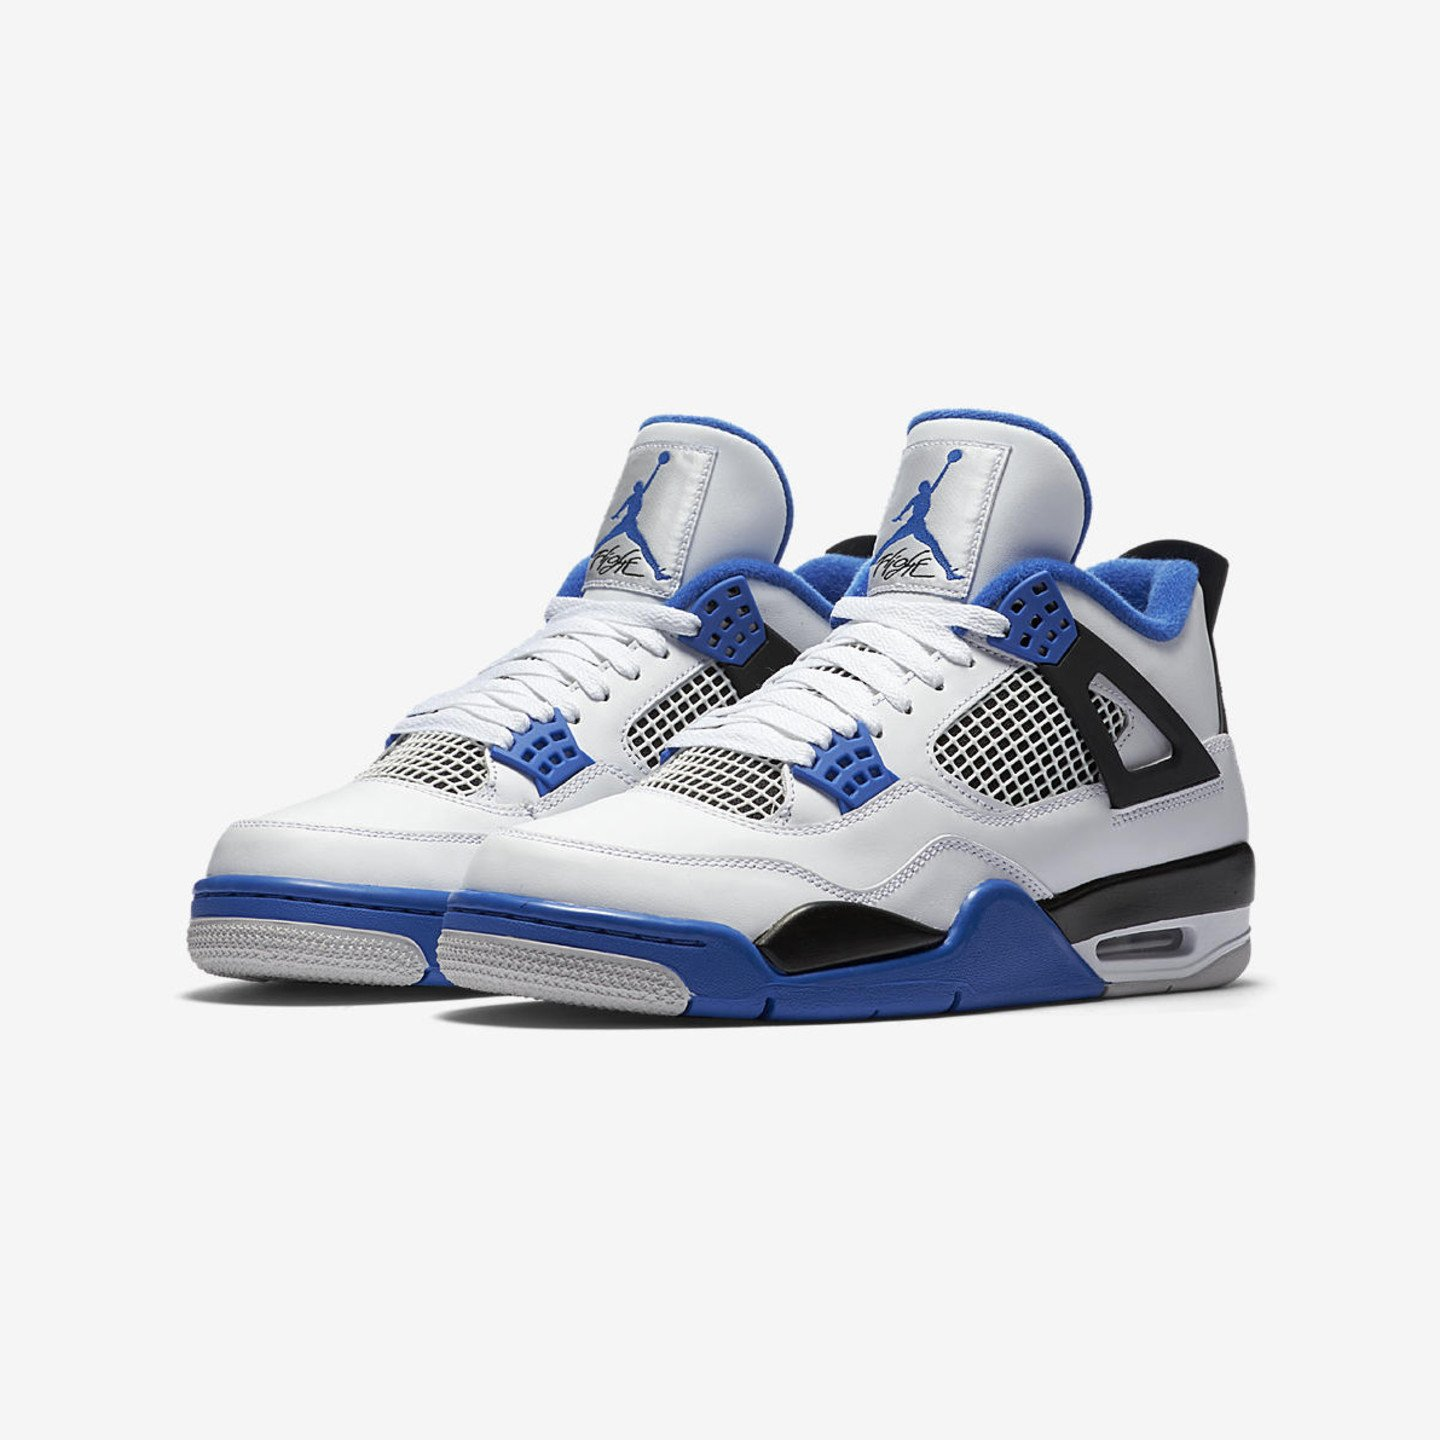 unbestimmt Air Jordan 4 Retro GS 'Motorsport' White / Game Royal / Black 408452-117-39